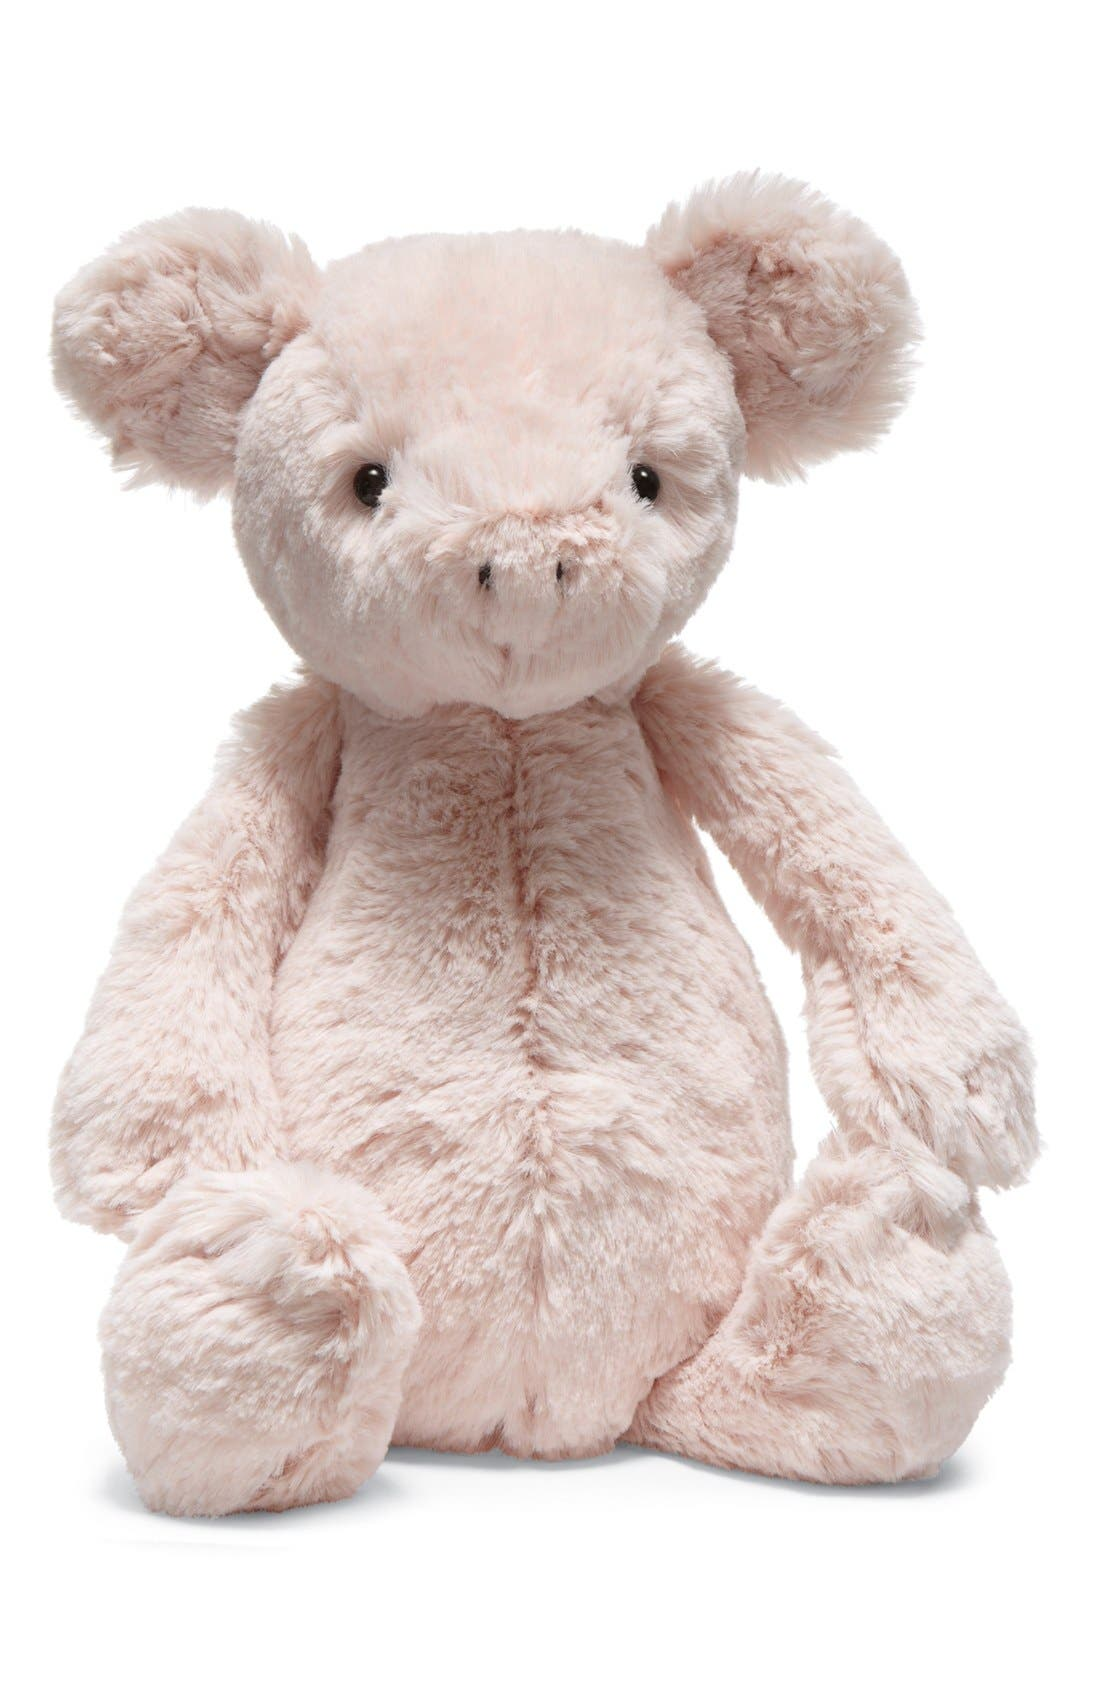 'Bashful Piggy' Stuffed Animal,                             Main thumbnail 1, color,                             PINK